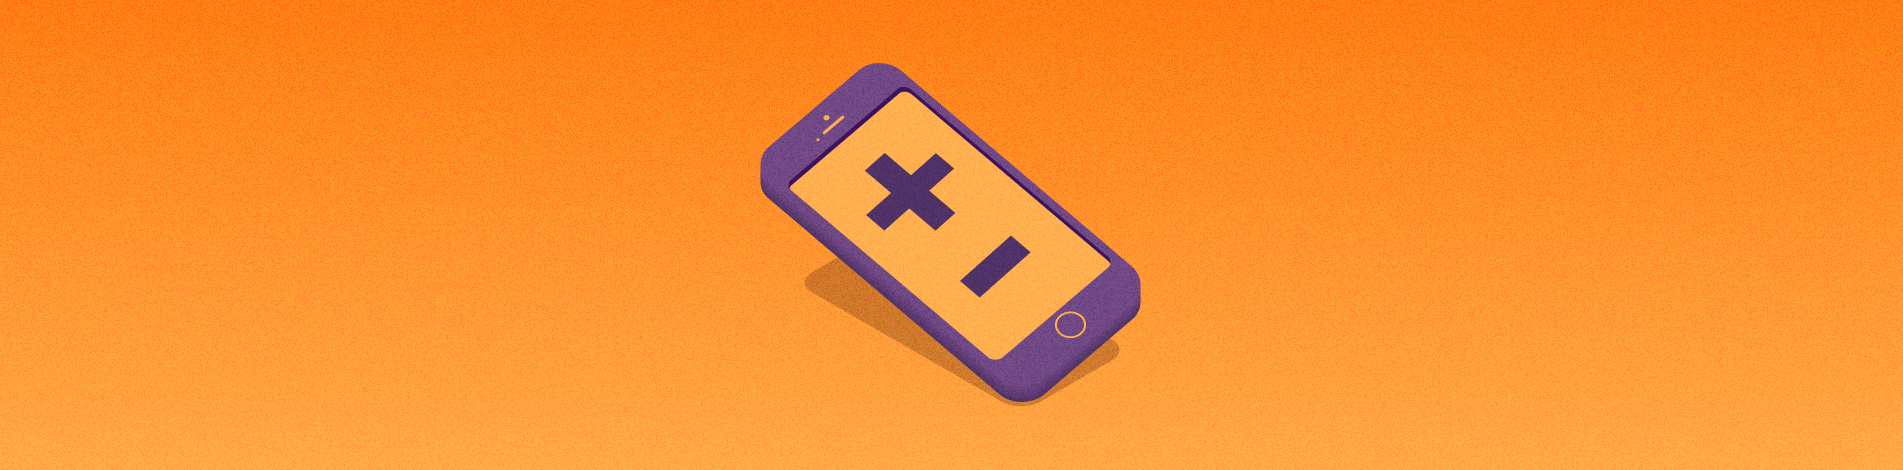 Mobile App vs Mobile Website: Pros and Cons of Each Approach